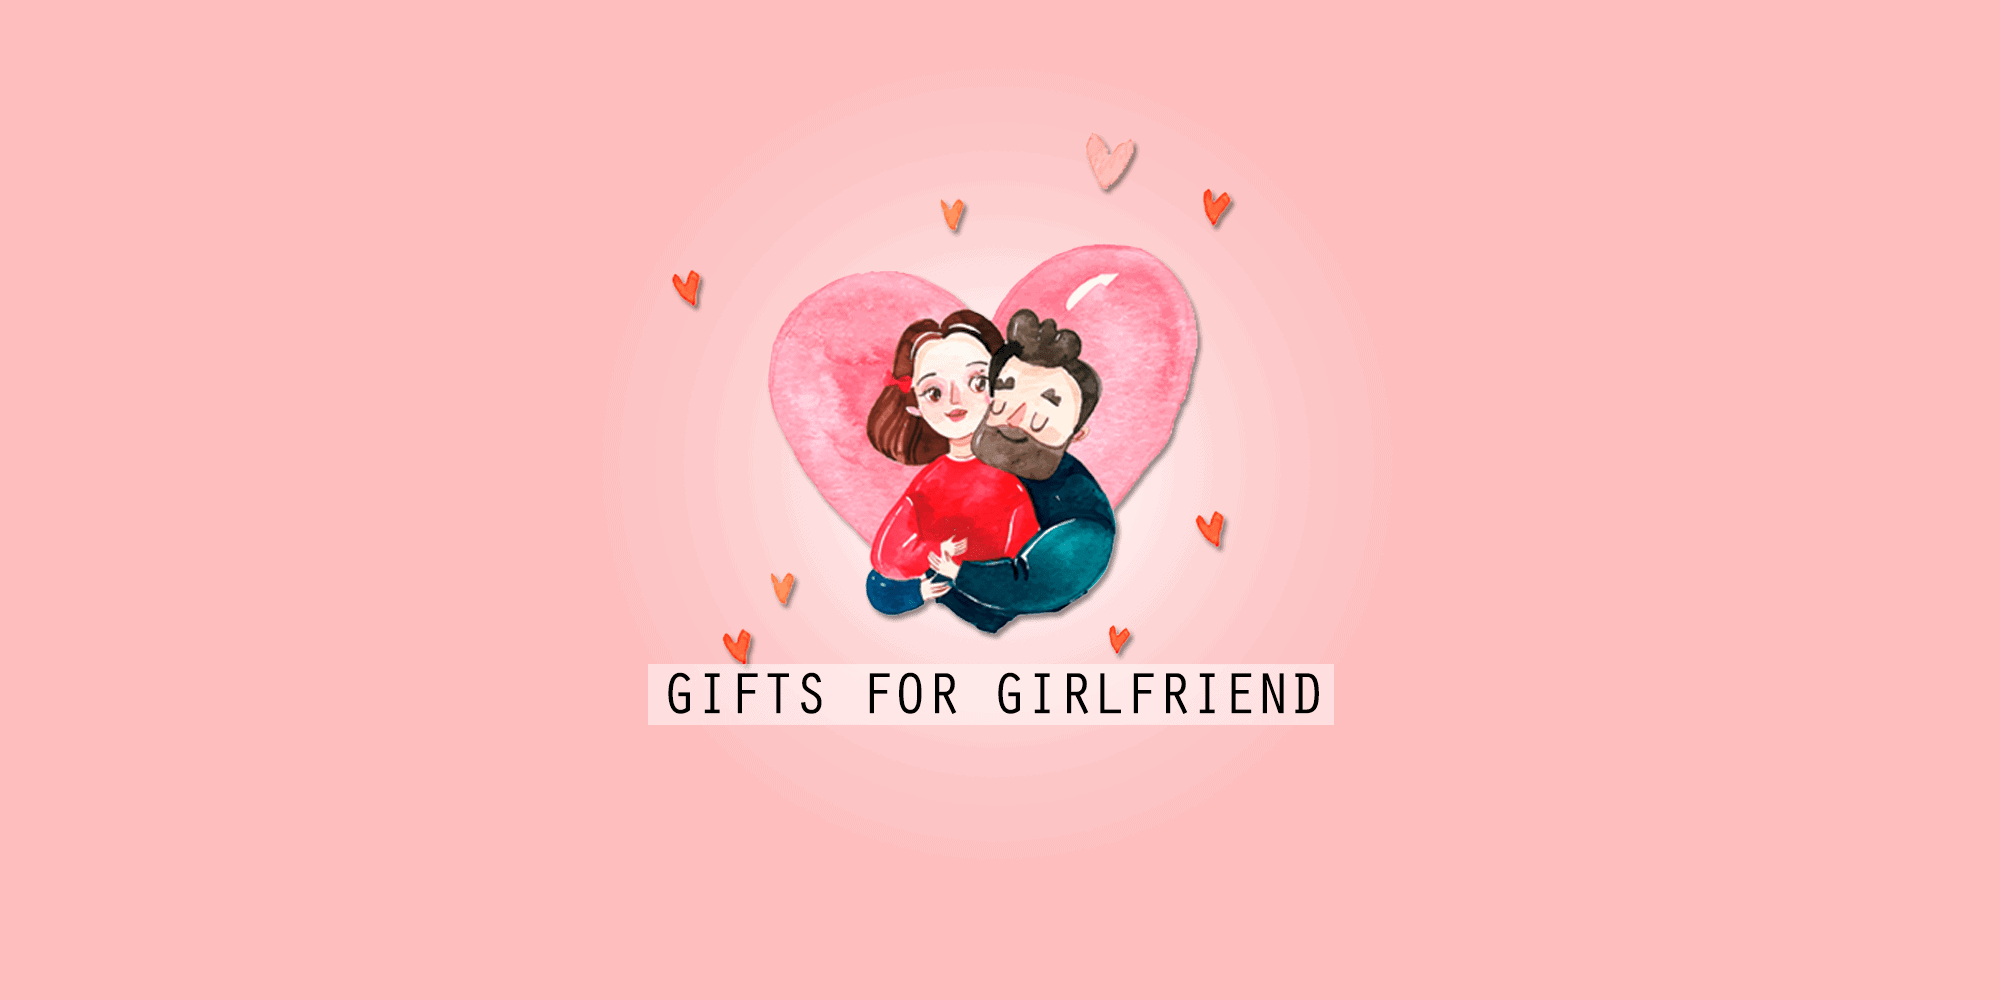 Thoughtful Gifts For Girlfriend: 52 Romantic And Cute Gift Ideas (2020)